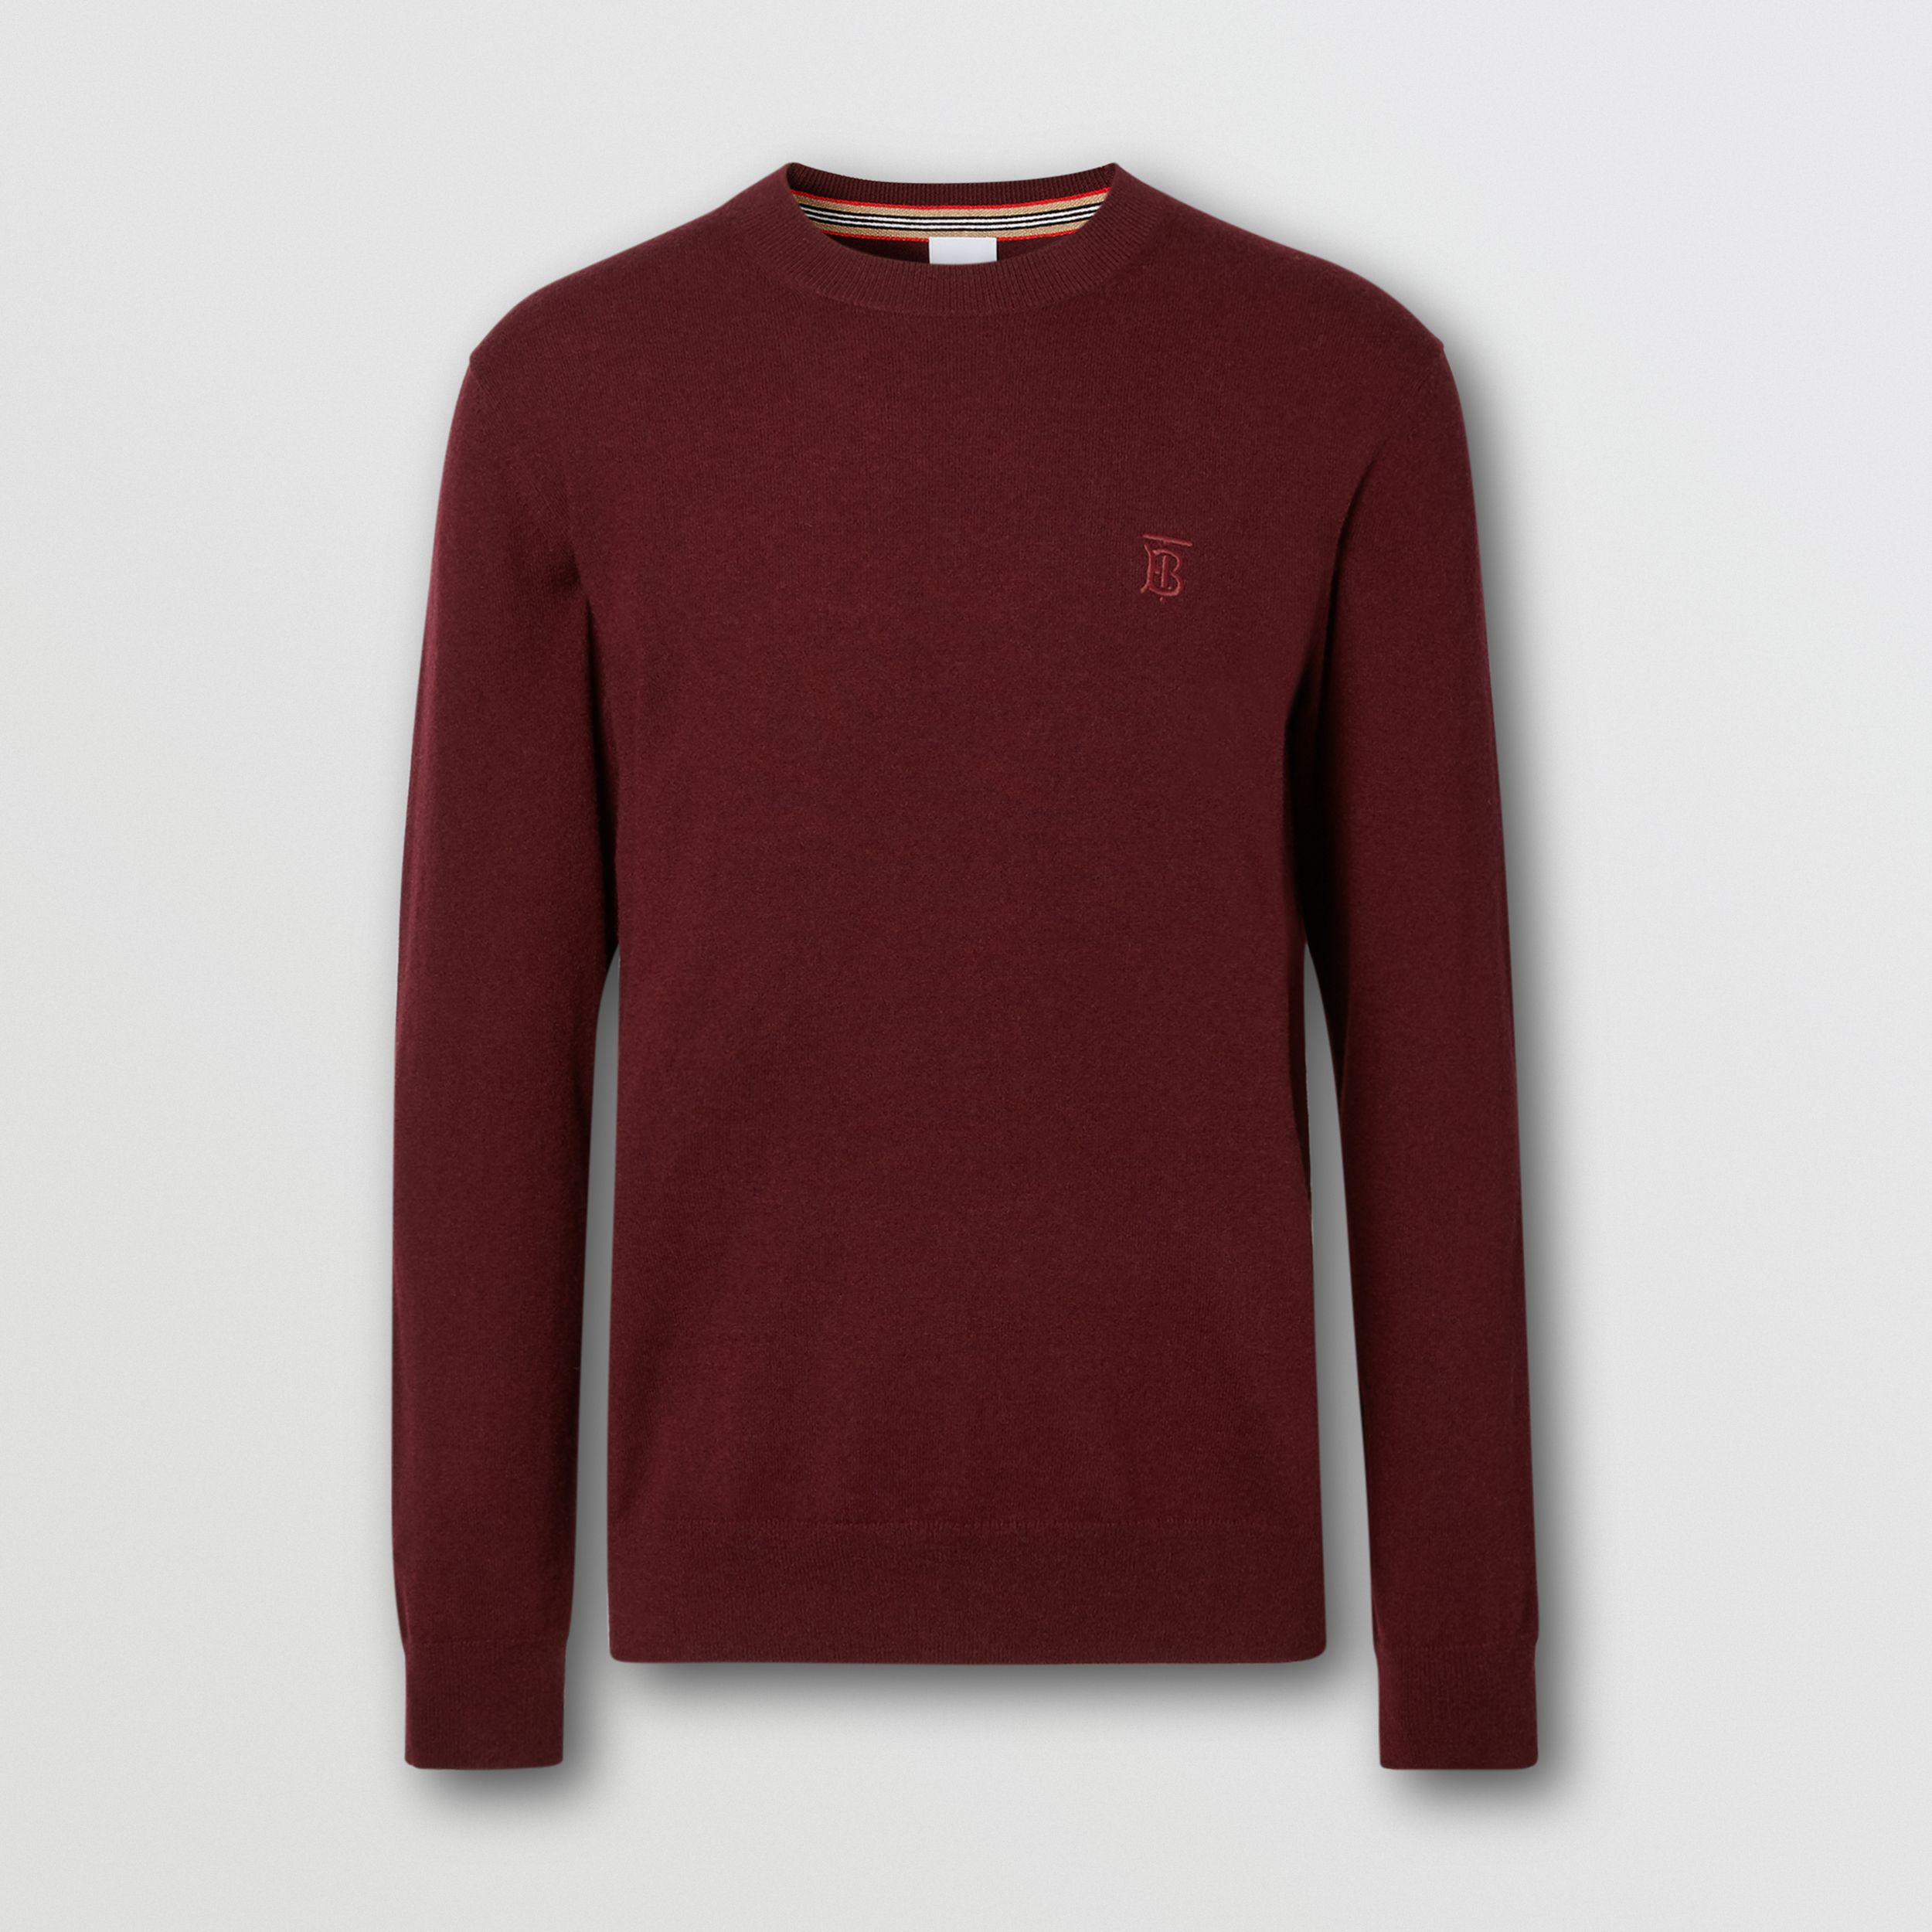 Monogram Motif Cashmere Sweater in Deep Merlot - Men | Burberry United States - 4